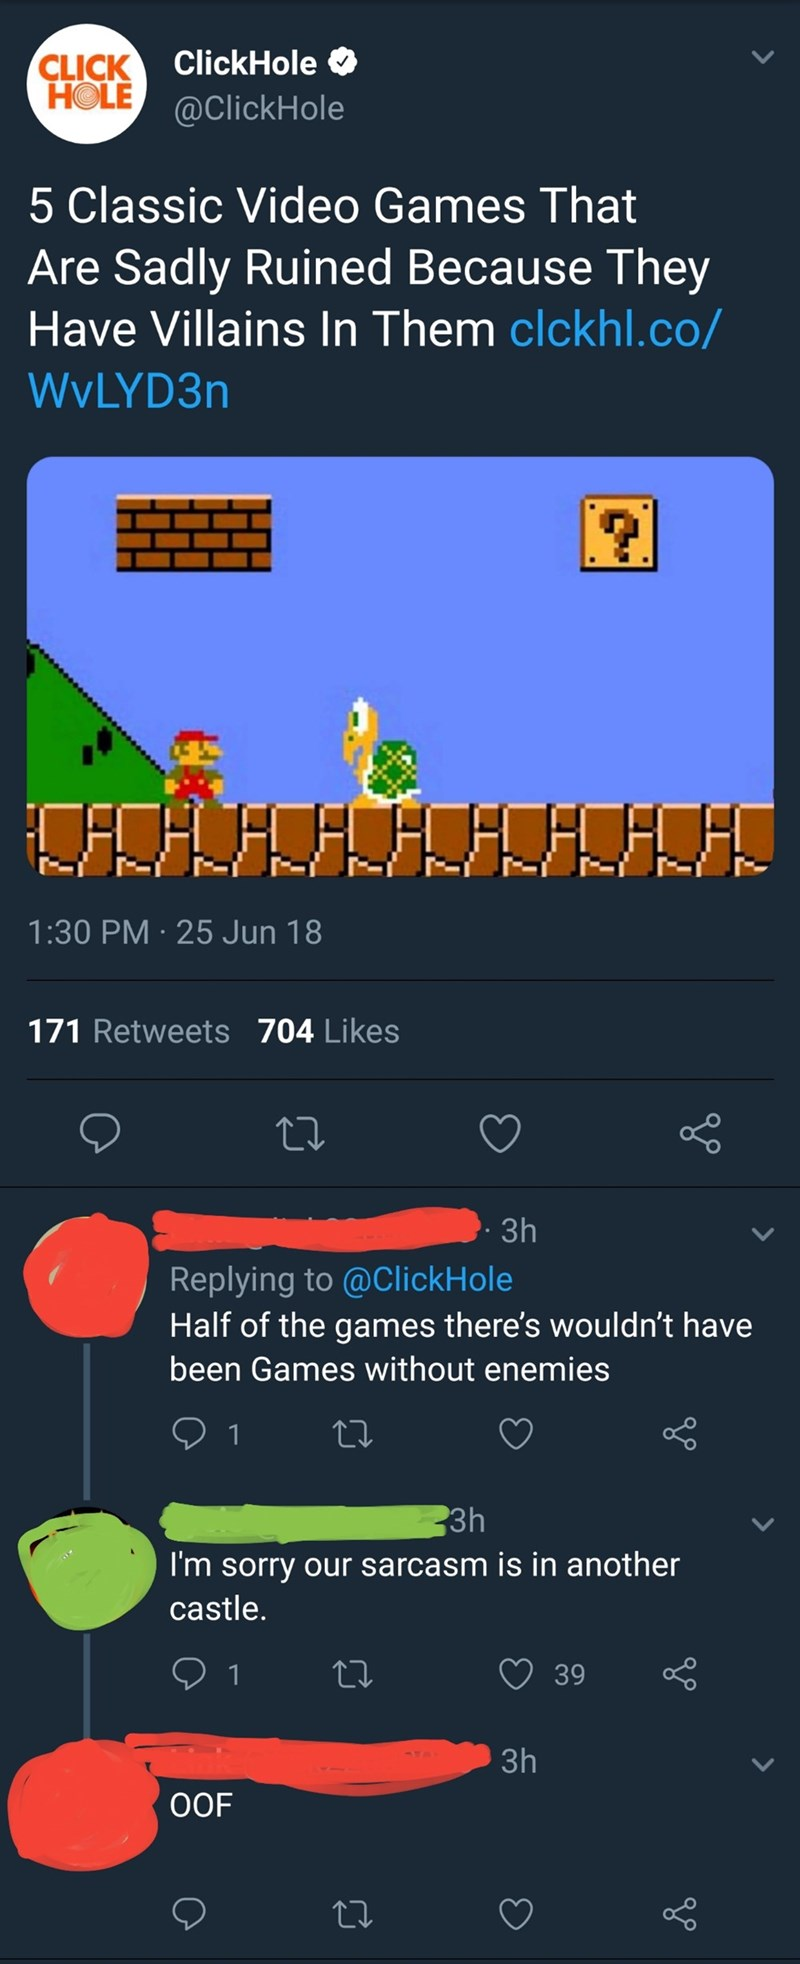 Screenshot - ClickHole CLICK HOLE @ClickHole 5 Classic Video Games That Are Sadly Ruined Because They Have Villains In Them clckhl.co/ WYLYD3N 1:30 PM 25 Jun 18 171 Retweets 704 Likes 3h Replying to @ClickHole Half of the games there's wouldn't have been Games without enemies 1 3h I'm sorry our sarcasm is in another castle. 39 1 Зh OOF